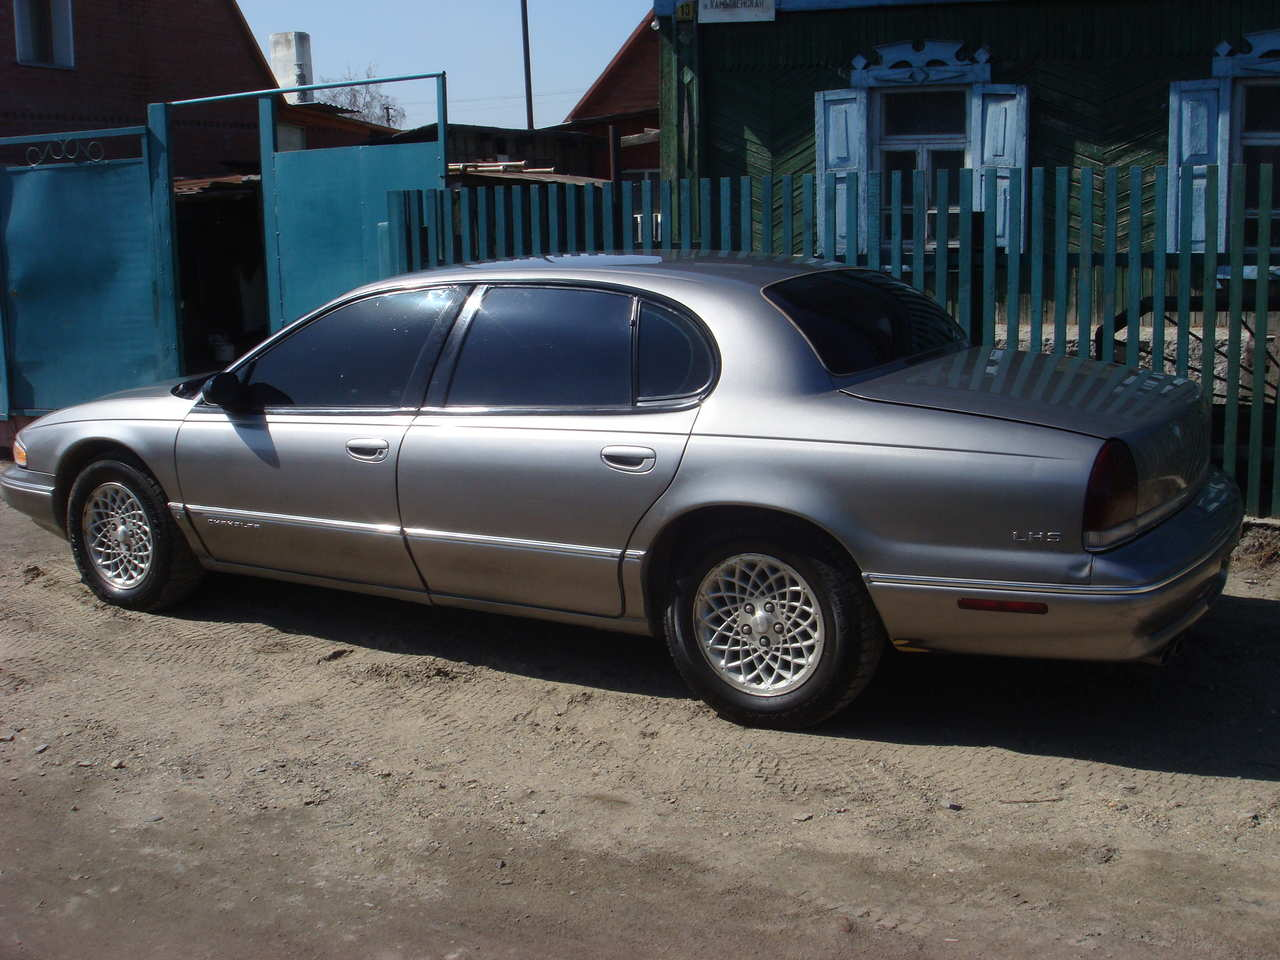 used 1996 chrysler lhs photos 3 5 gasoline ff automatic for sale